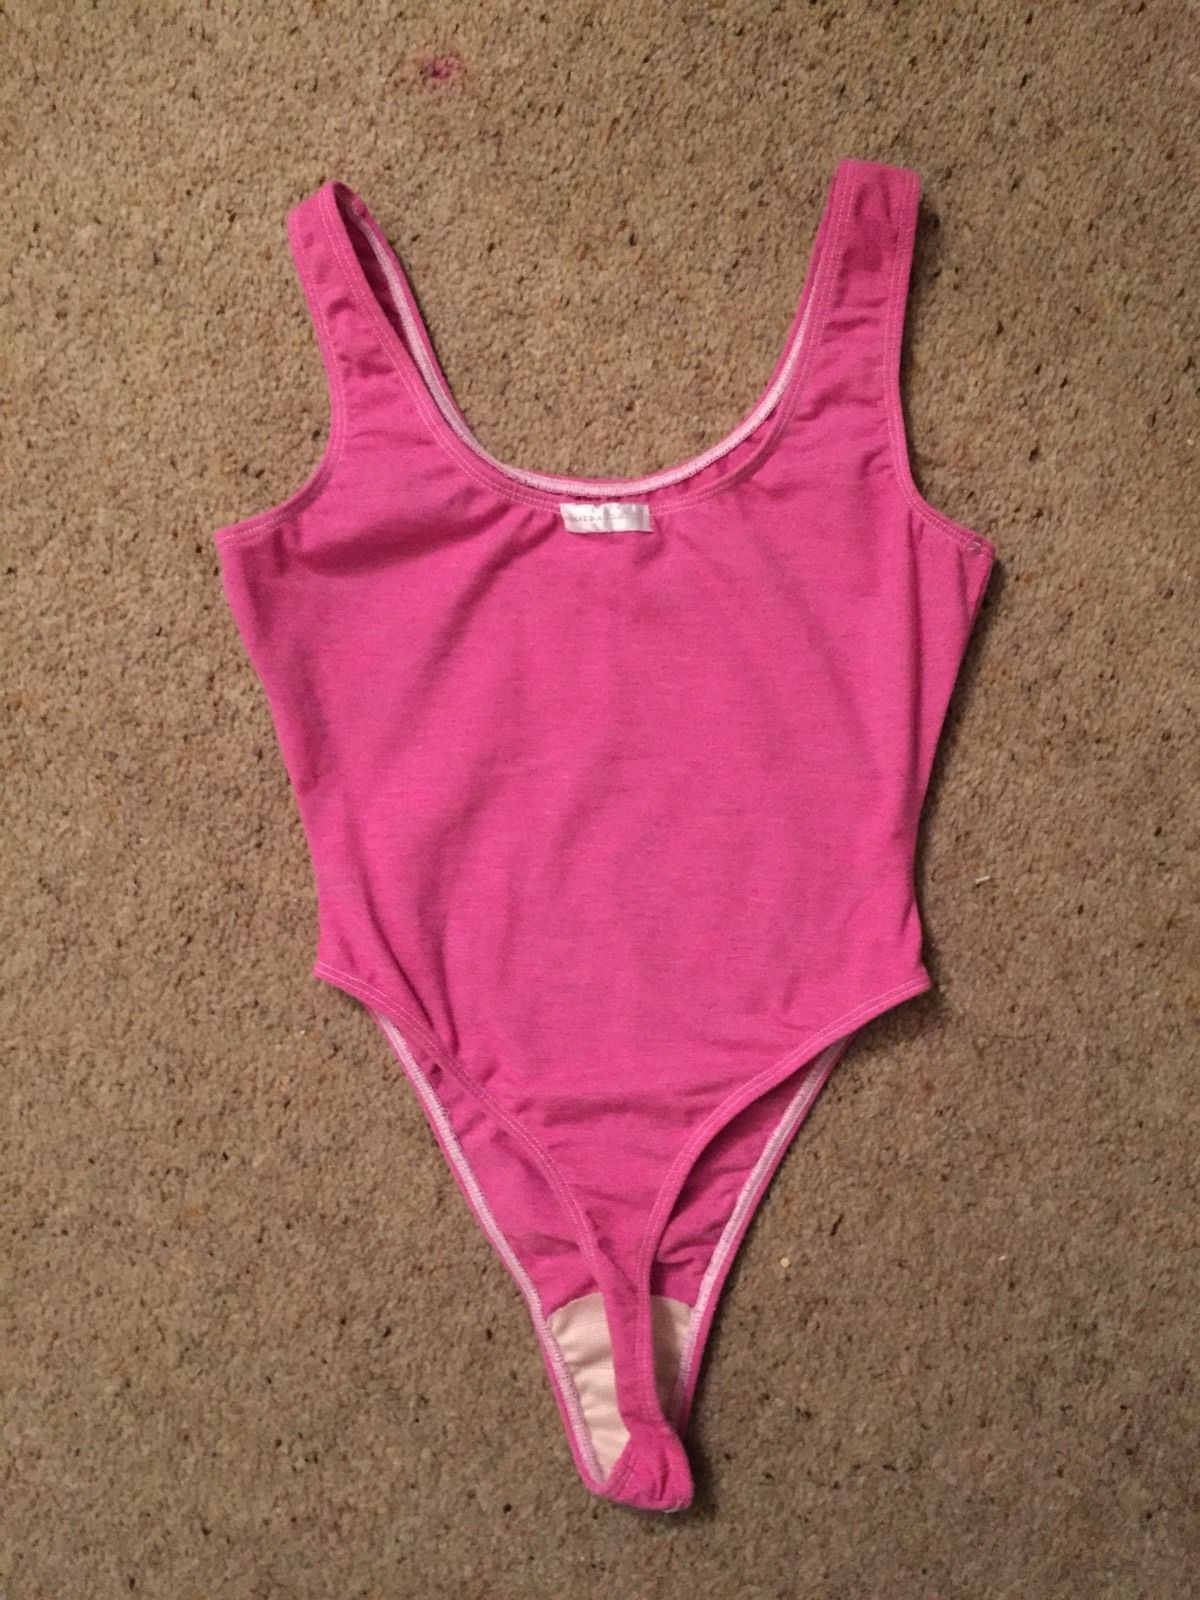 446fa86d31 Pin on Lycra Thong Leotards For Sale